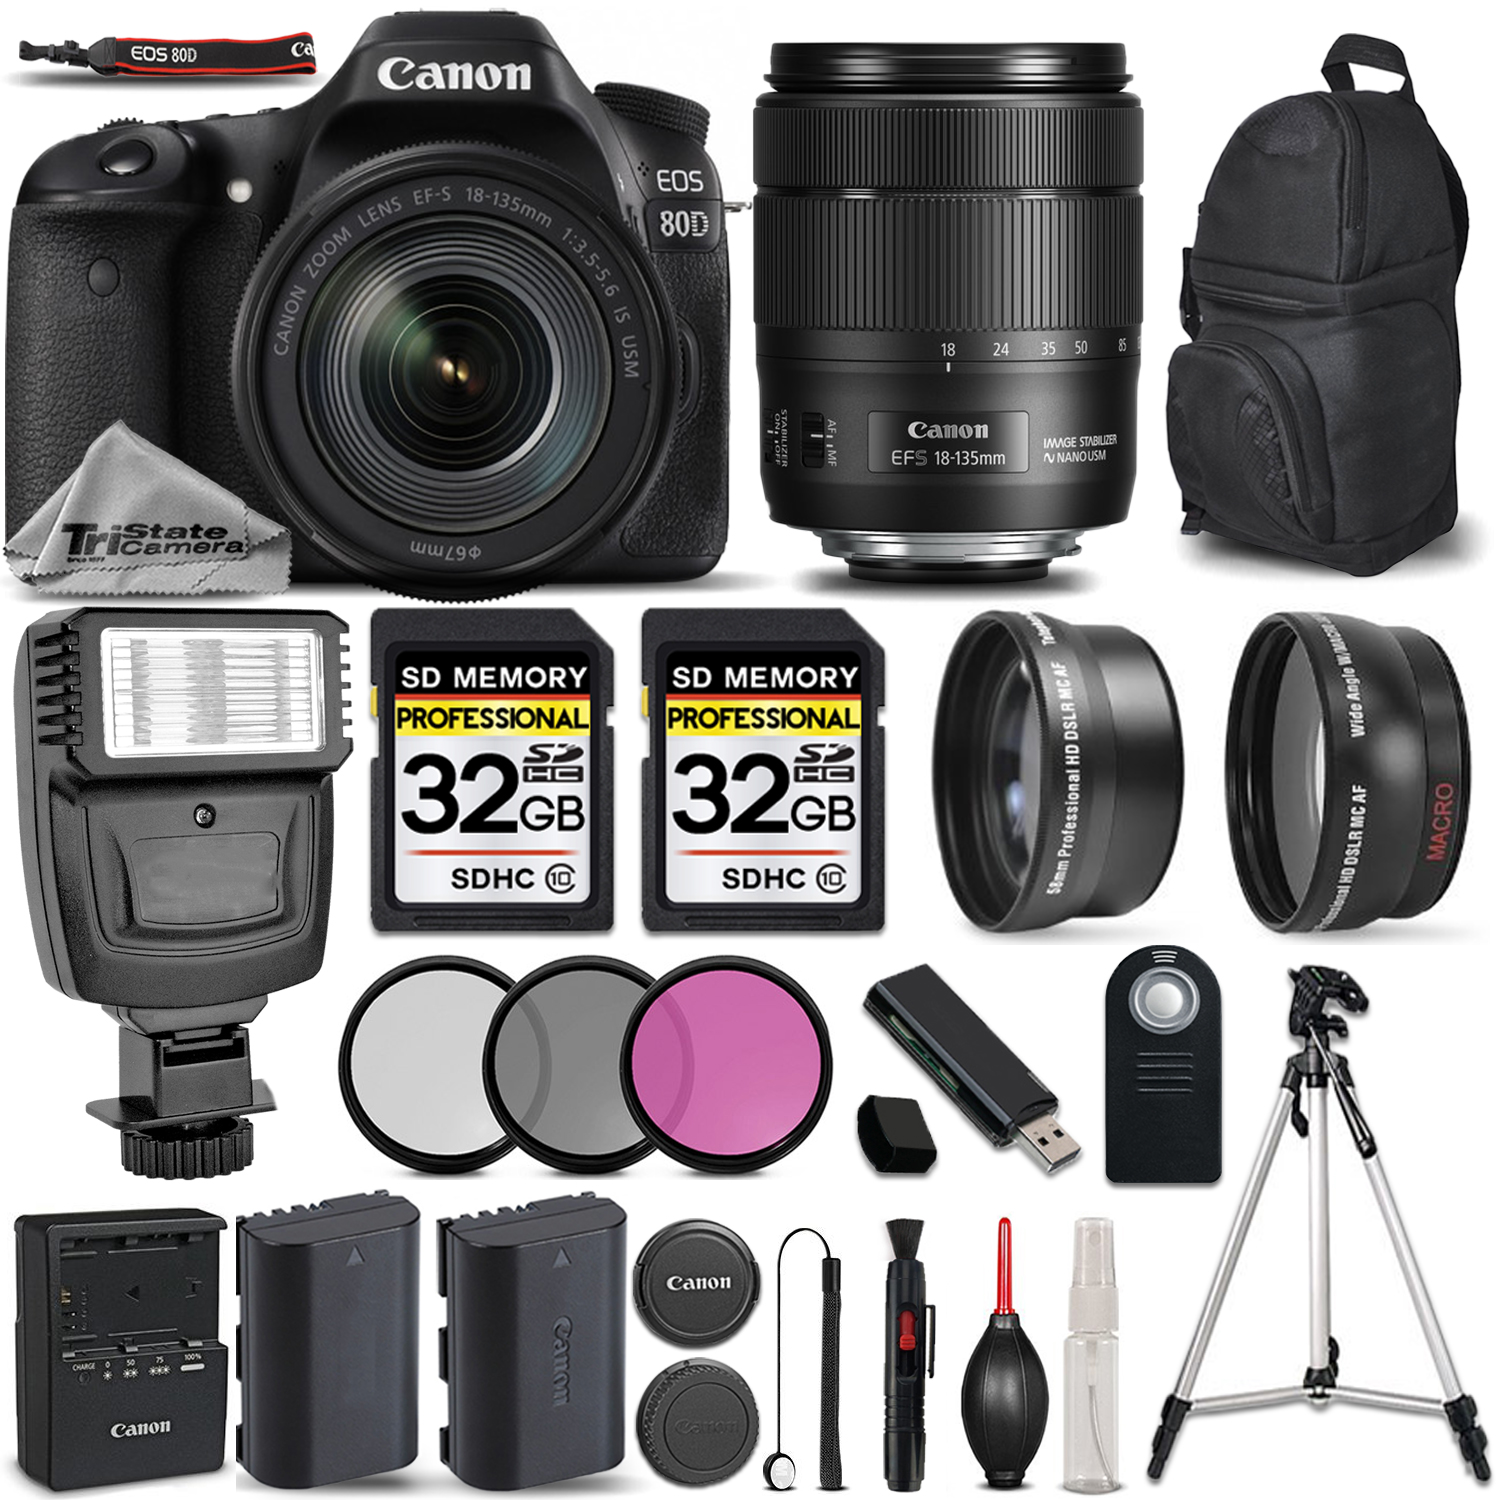 EOS 80D DSLR Camera + 18-135mm IS USM + FLASH + UV, CPL, FLD FILTER +64GB *FREE SHIPPING*